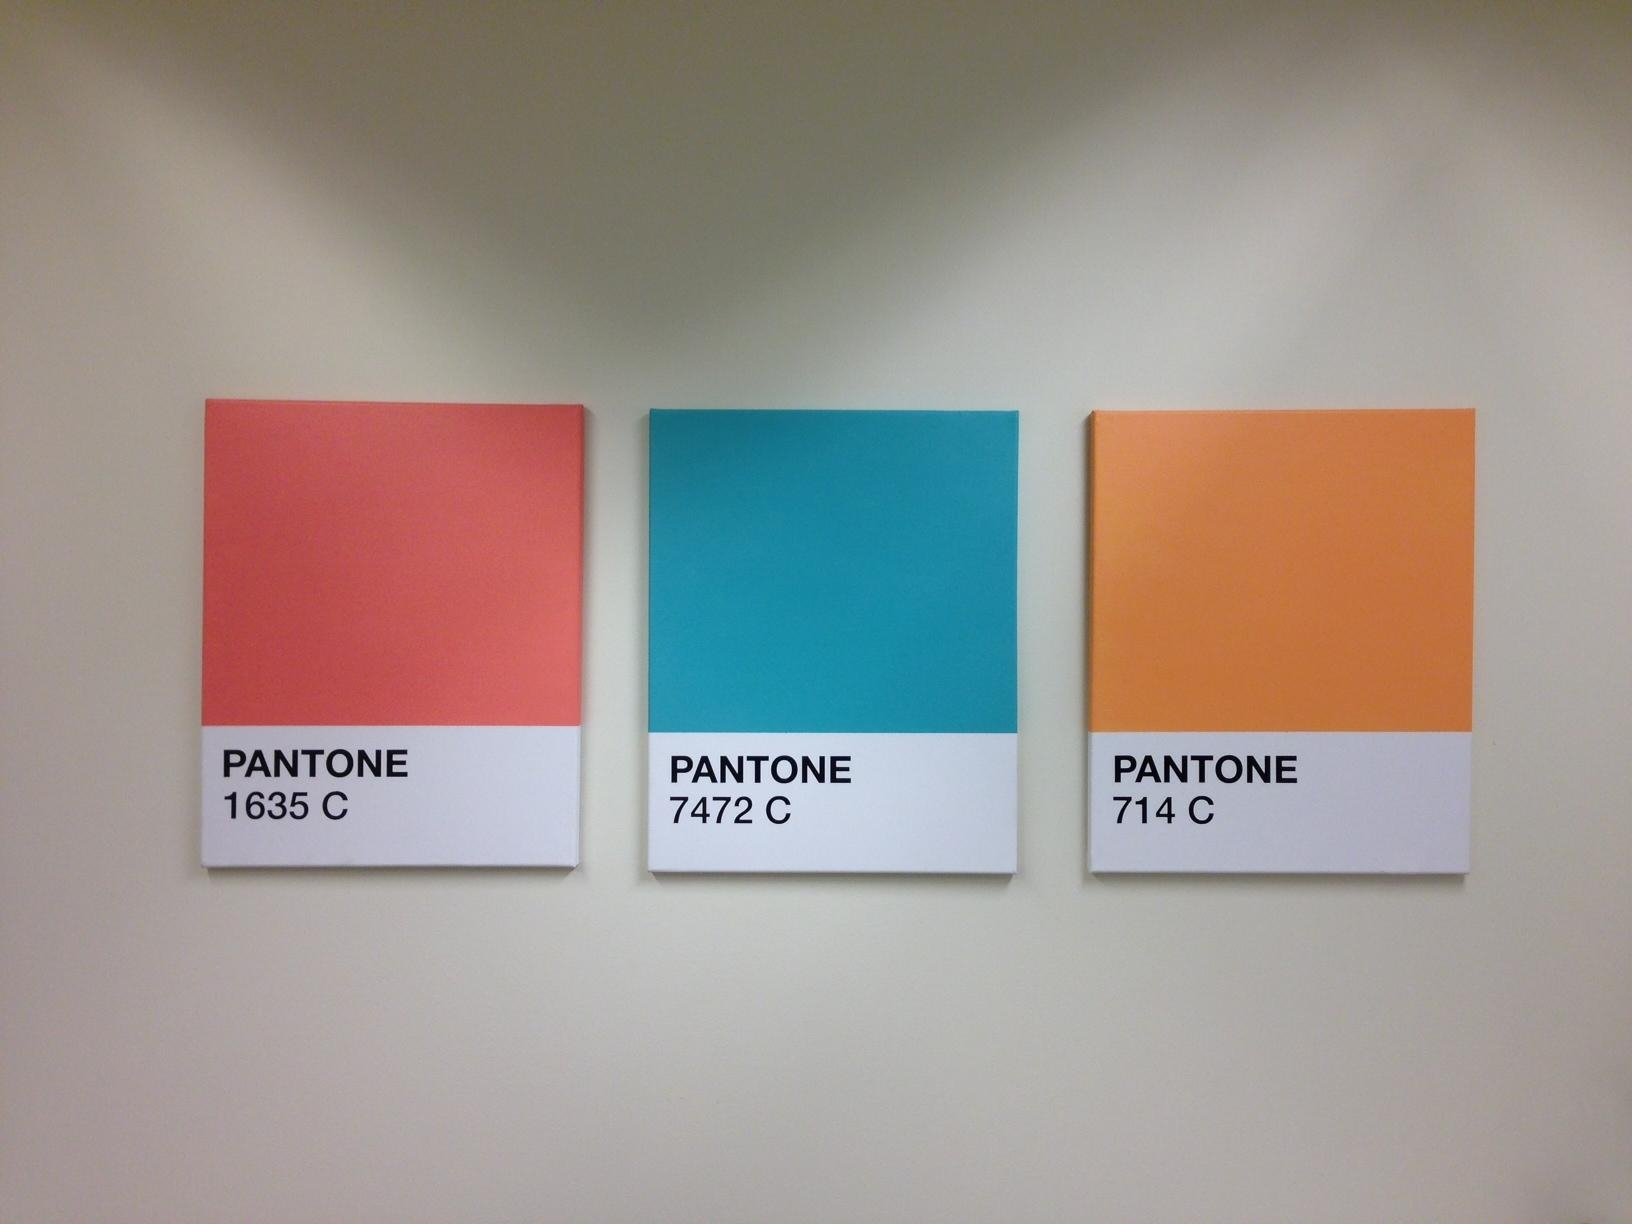 Pantone Canvas Wall Art Color Swatches | The Rodimels Family Blog Regarding Wall Art For Office Space (View 15 of 20)